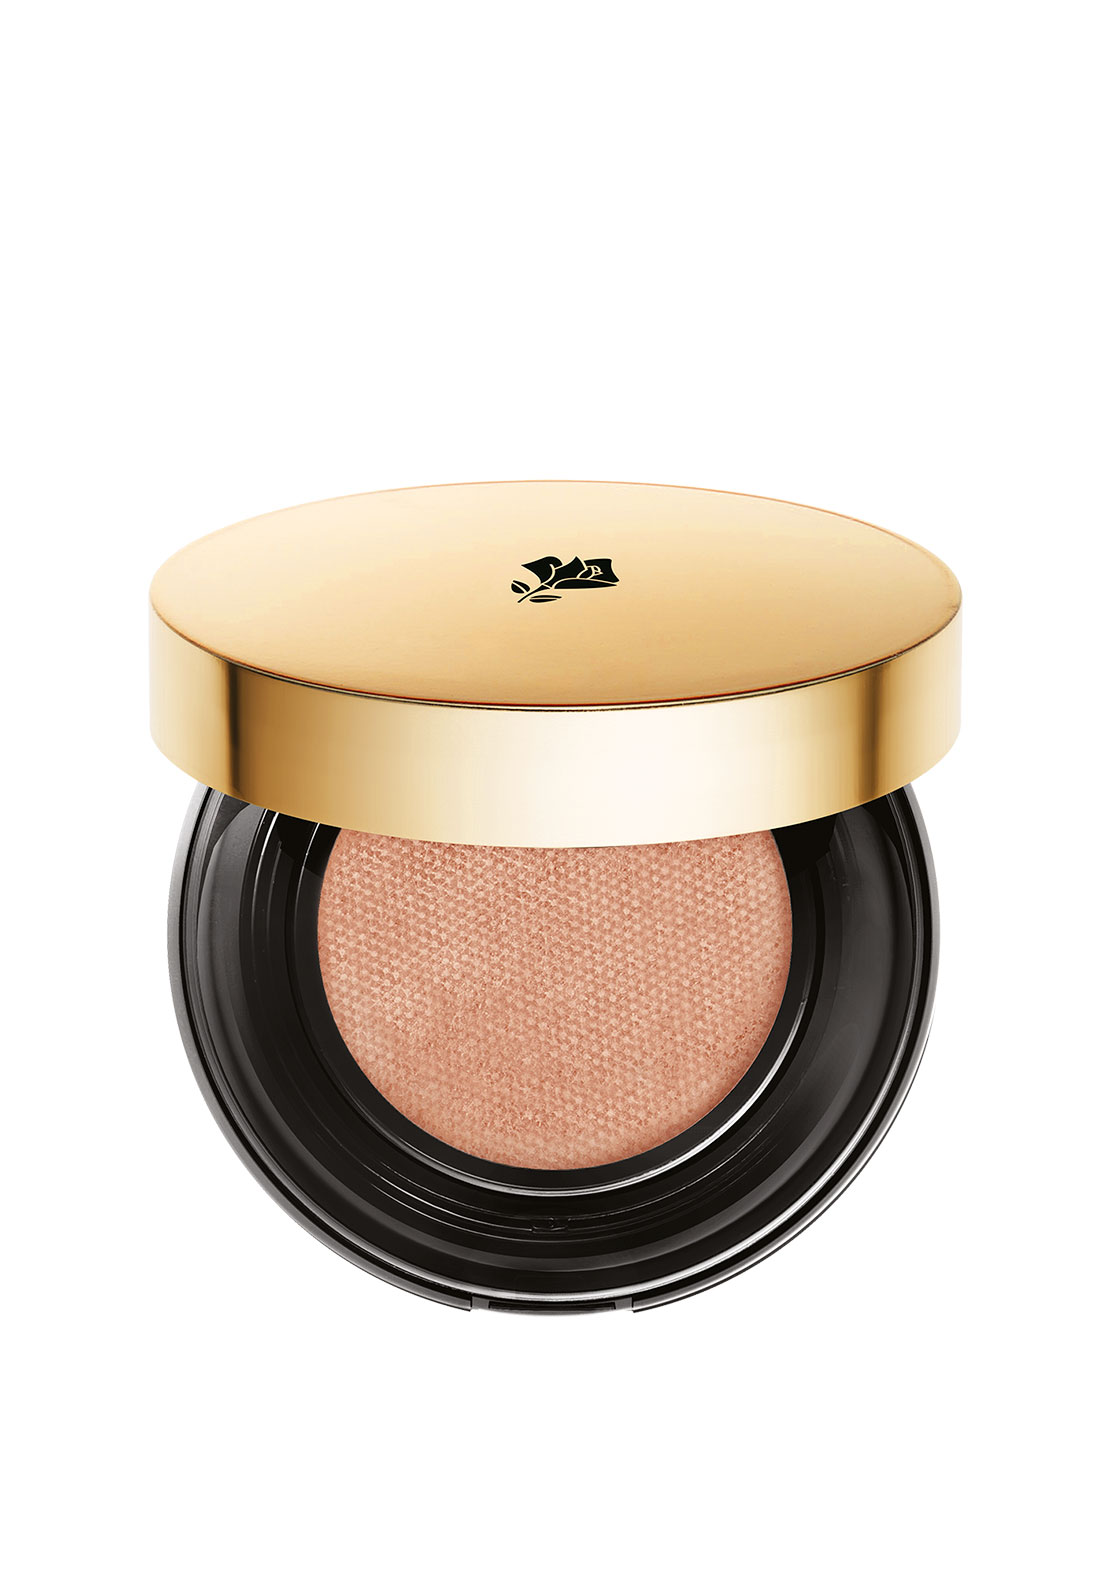 Lancome Teint Idole Ultra Cushion Compact Foundation, Ivoire